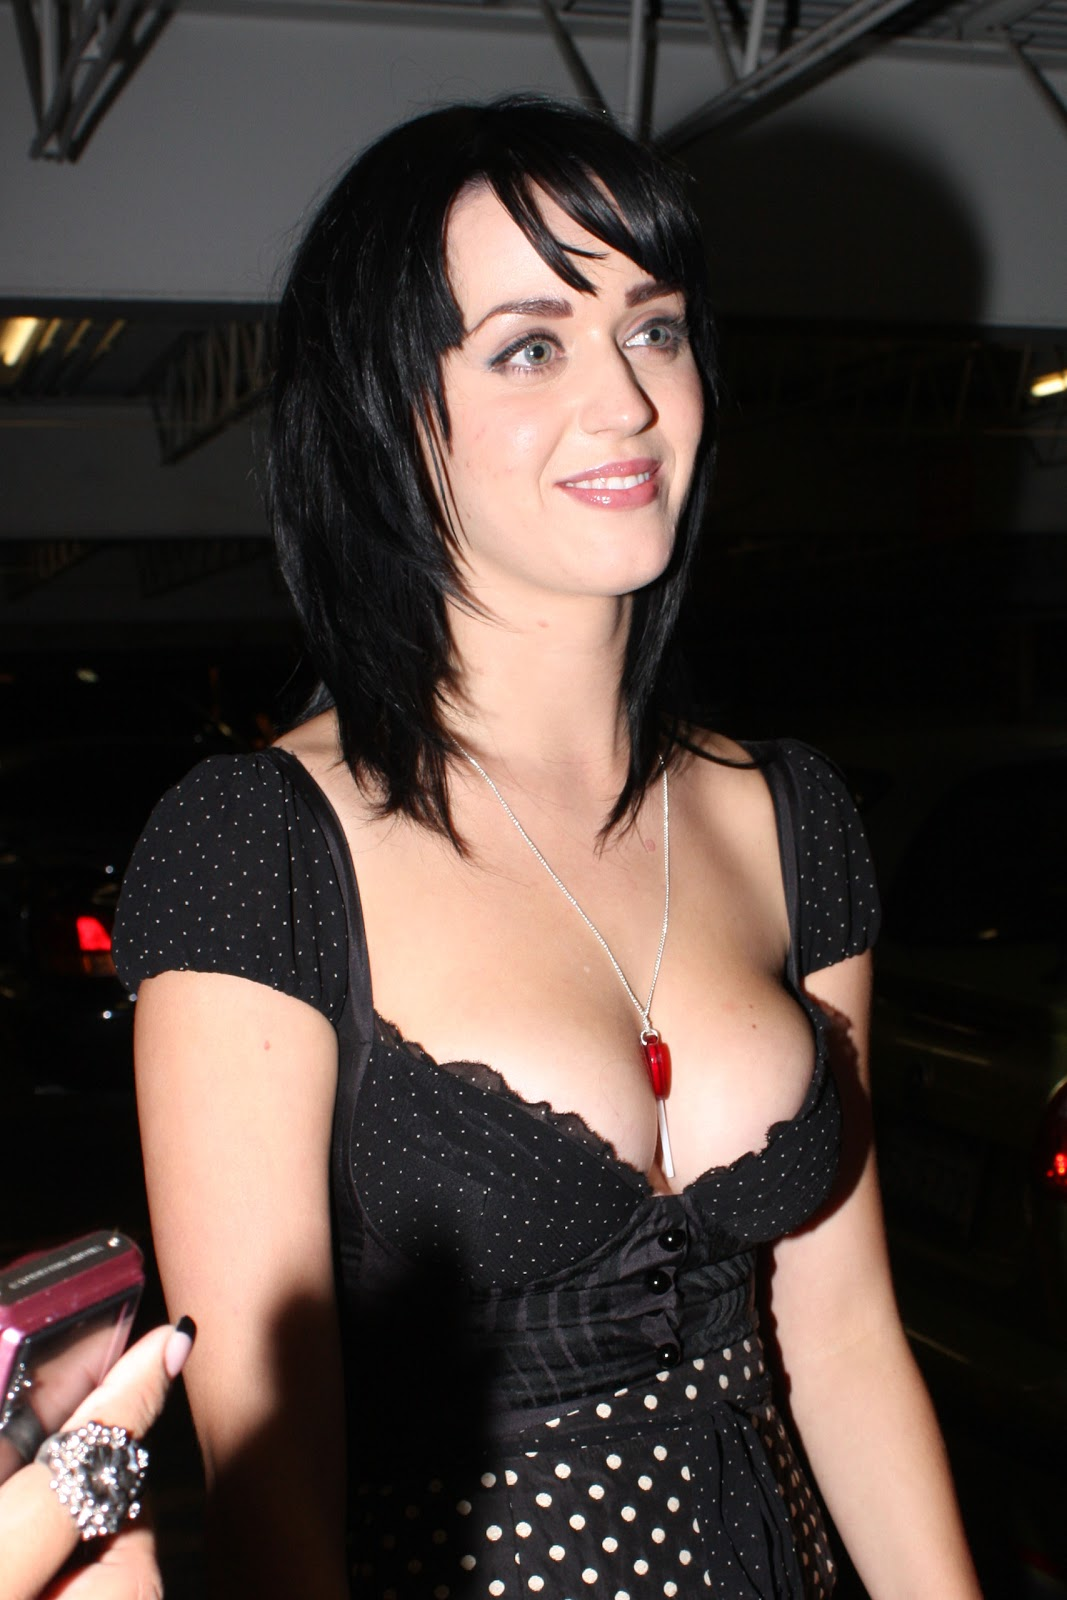 http://3.bp.blogspot.com/-kbkFrDX1Zo0/TkuCaqFGDTI/AAAAAAAAC0o/UFIz9u911J8/s1600/Katy+Perry+hot+boobs+20.jpg